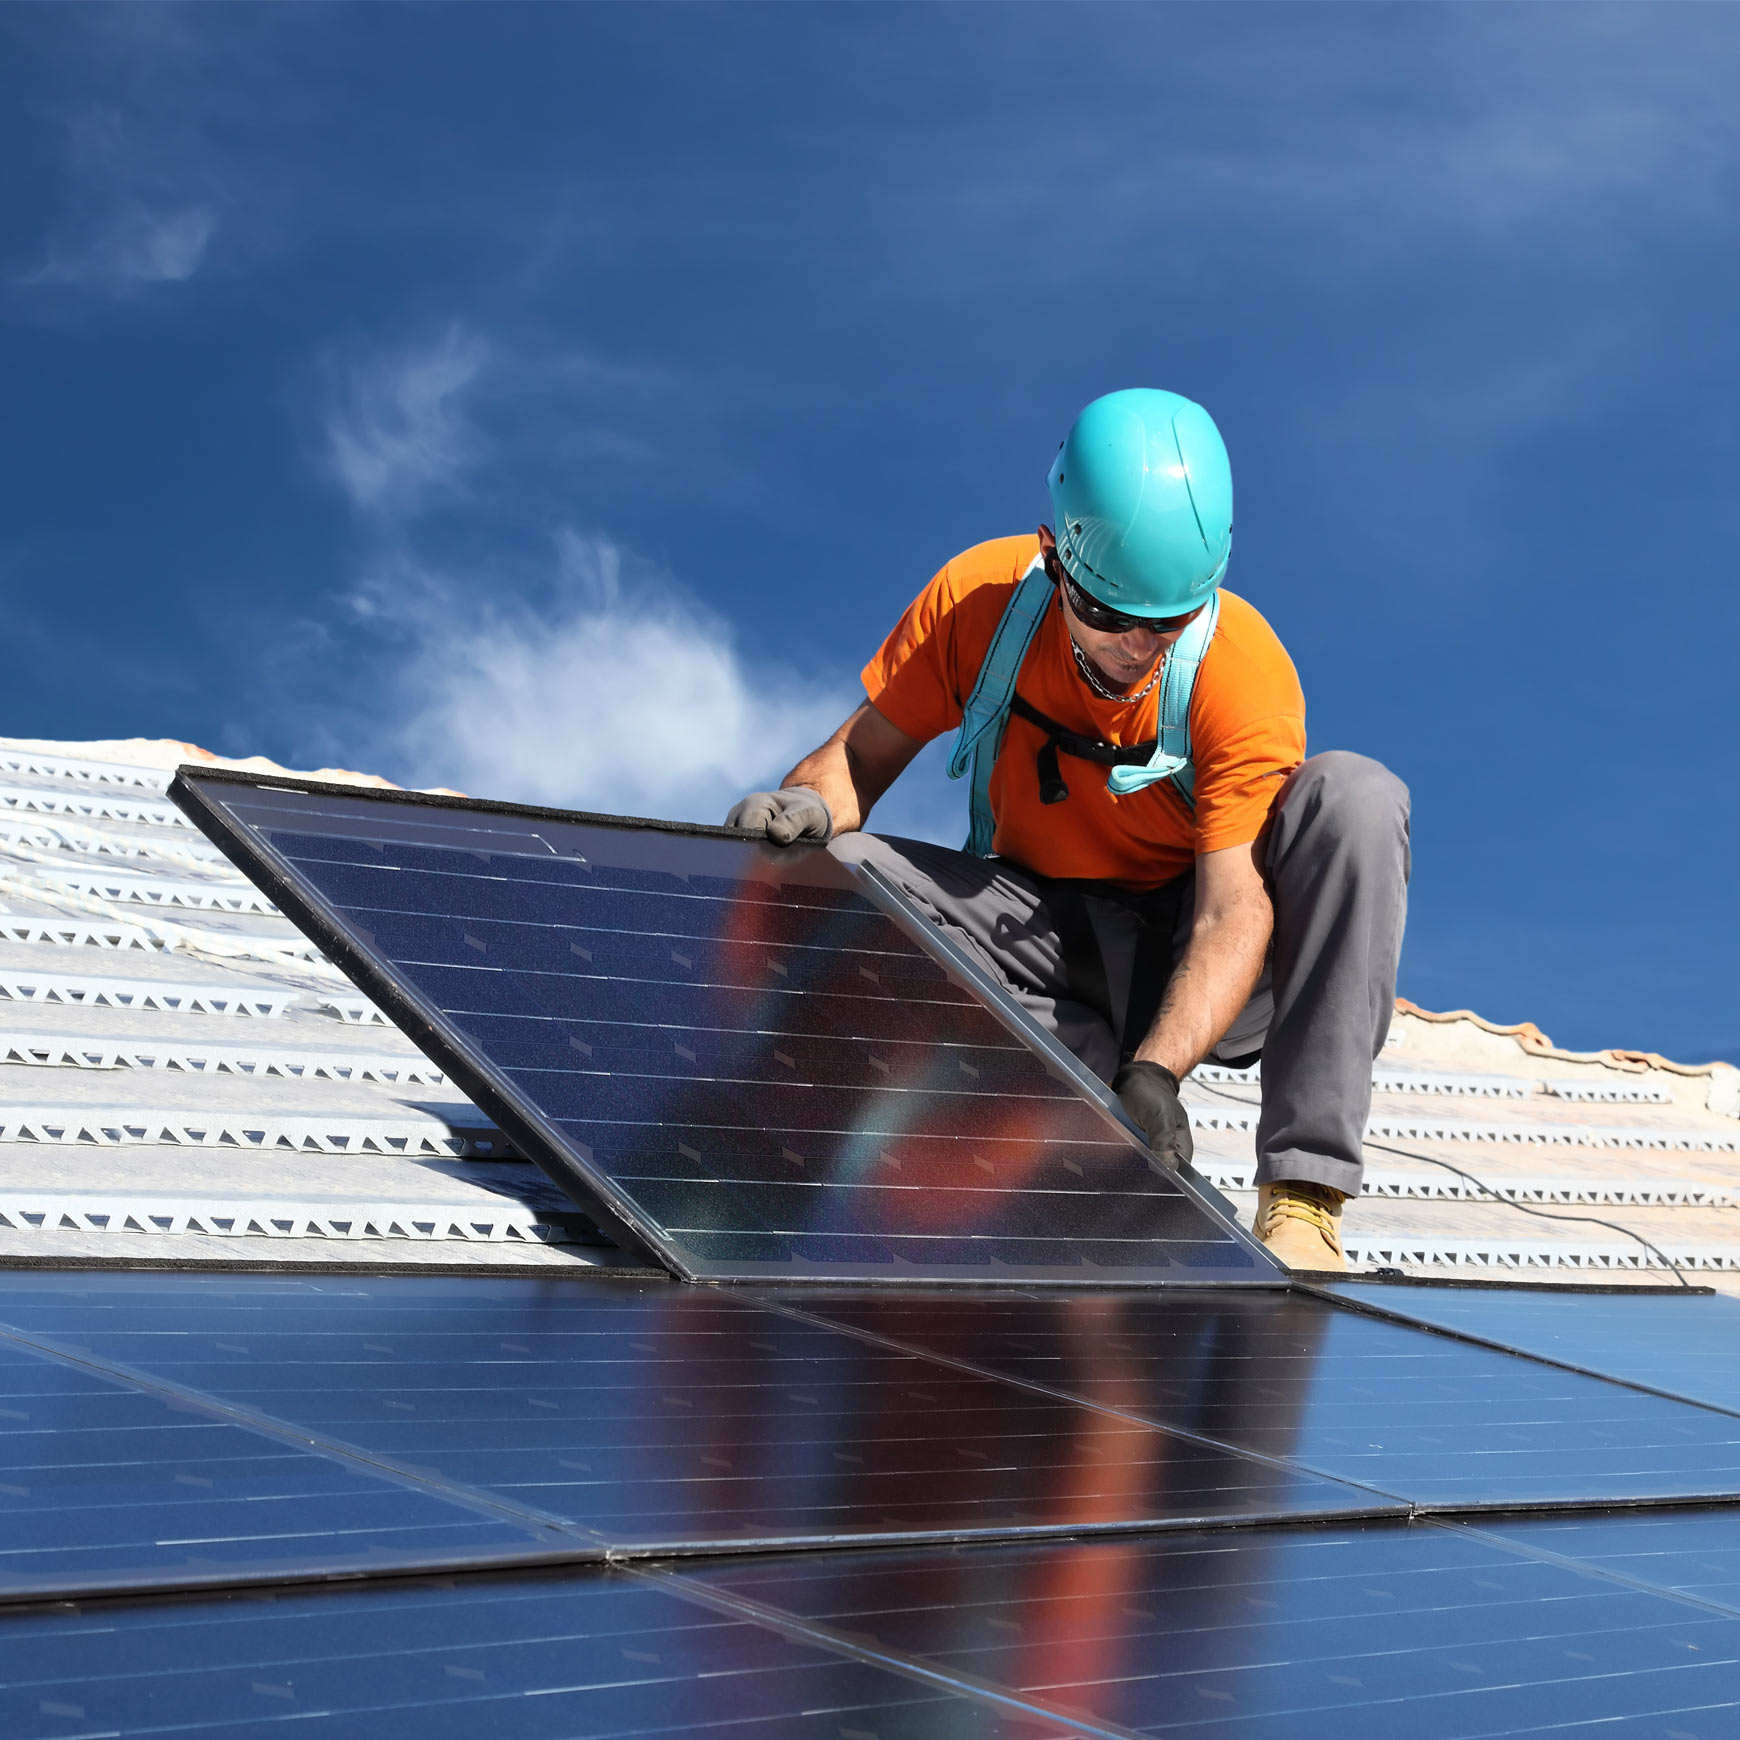 field worker putting a solar panel in place on house.